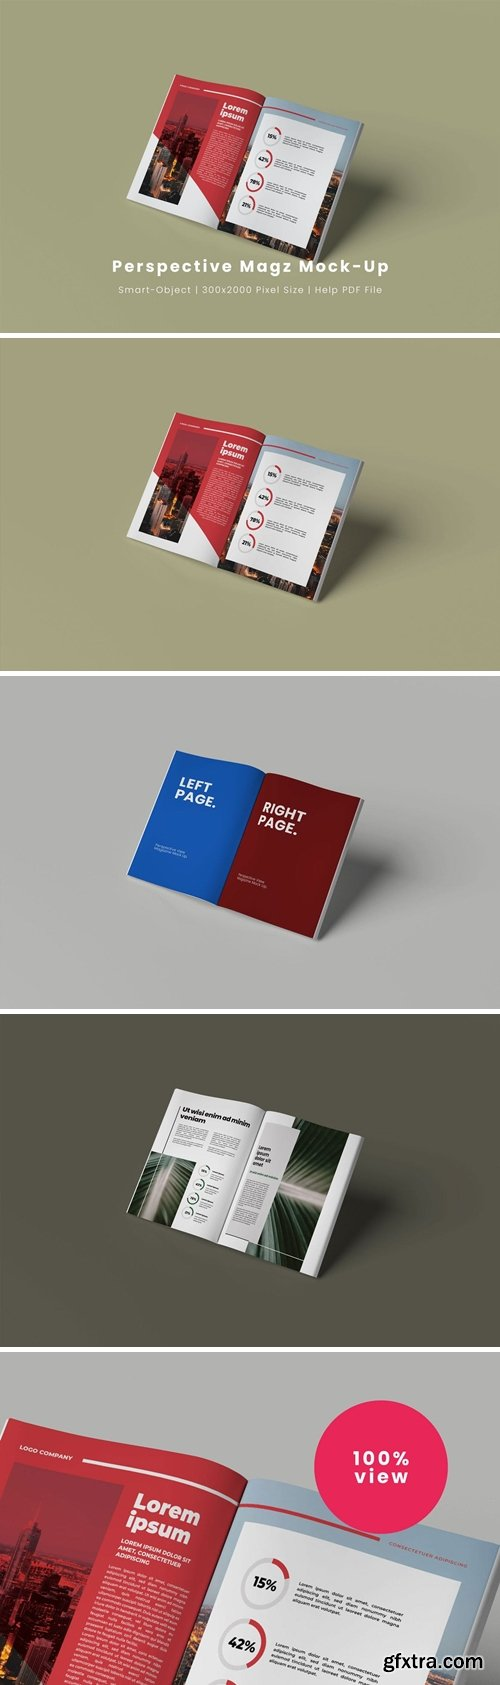 Perspective Magz Mock-Up